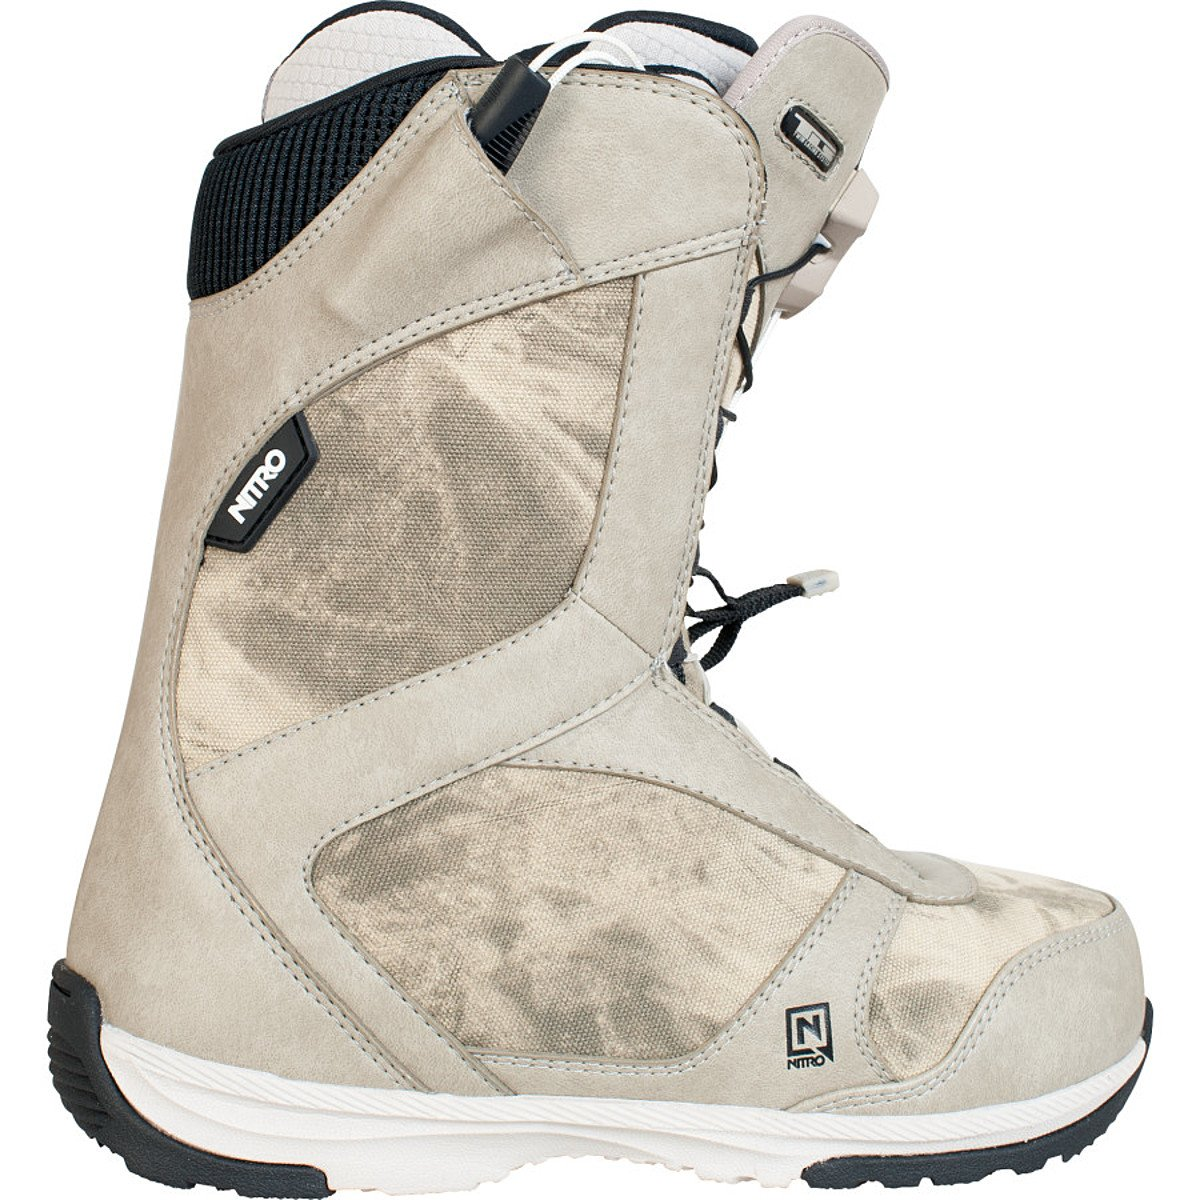 Nitro Monarch TLS Snowboard Boot Women's AcidBone Tls